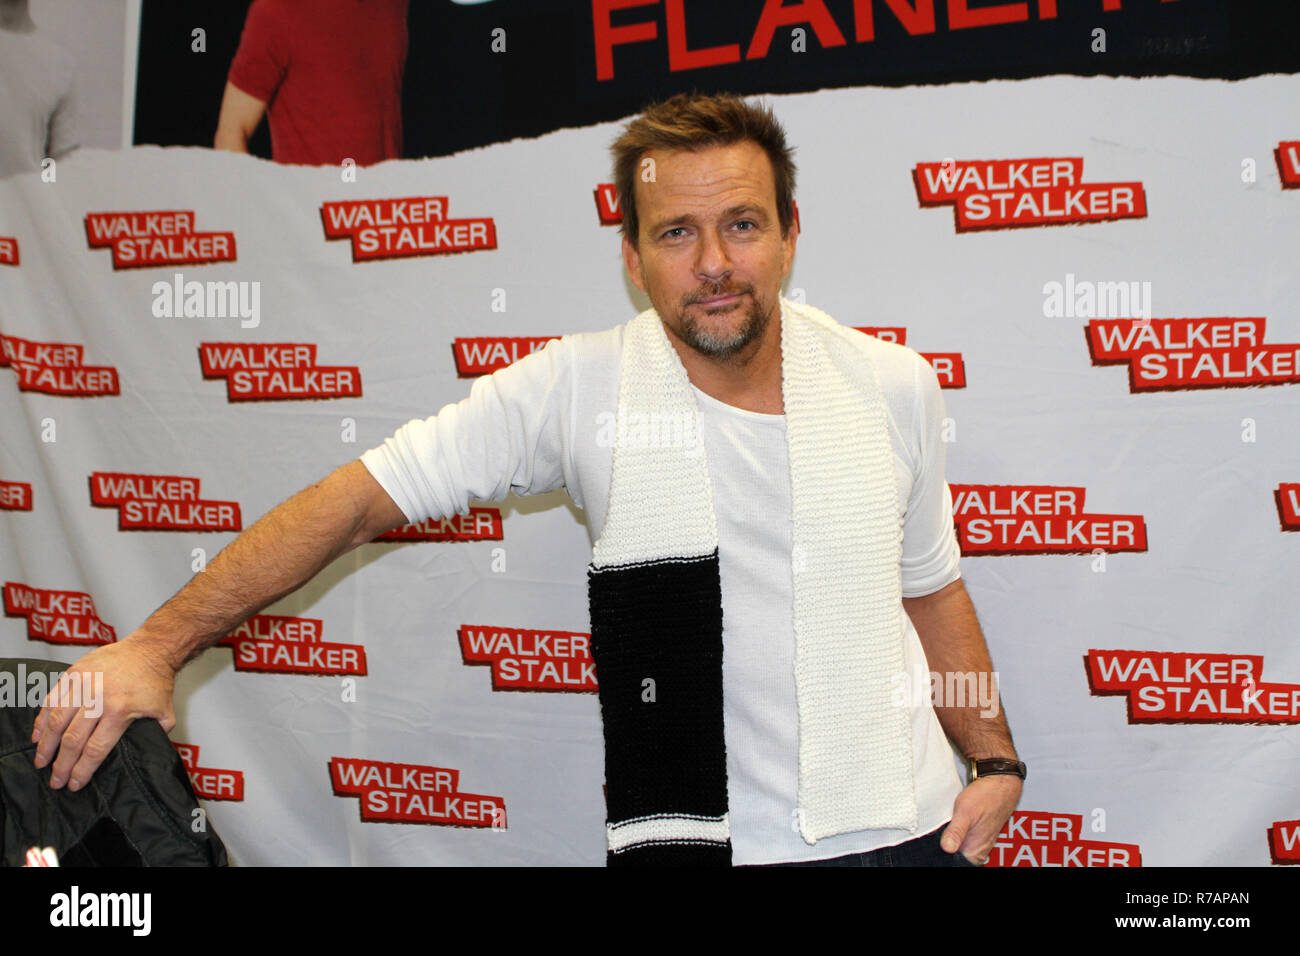 USA. 8th Dec, 2018. Walker Stalker Con held at the New Jersey Convention and Expo center in Edison New Jersey.Sean Partick Flanery Credit: Bruce Cotler/Globe Photos/ZUMA Wire/Alamy Live News - Stock Image